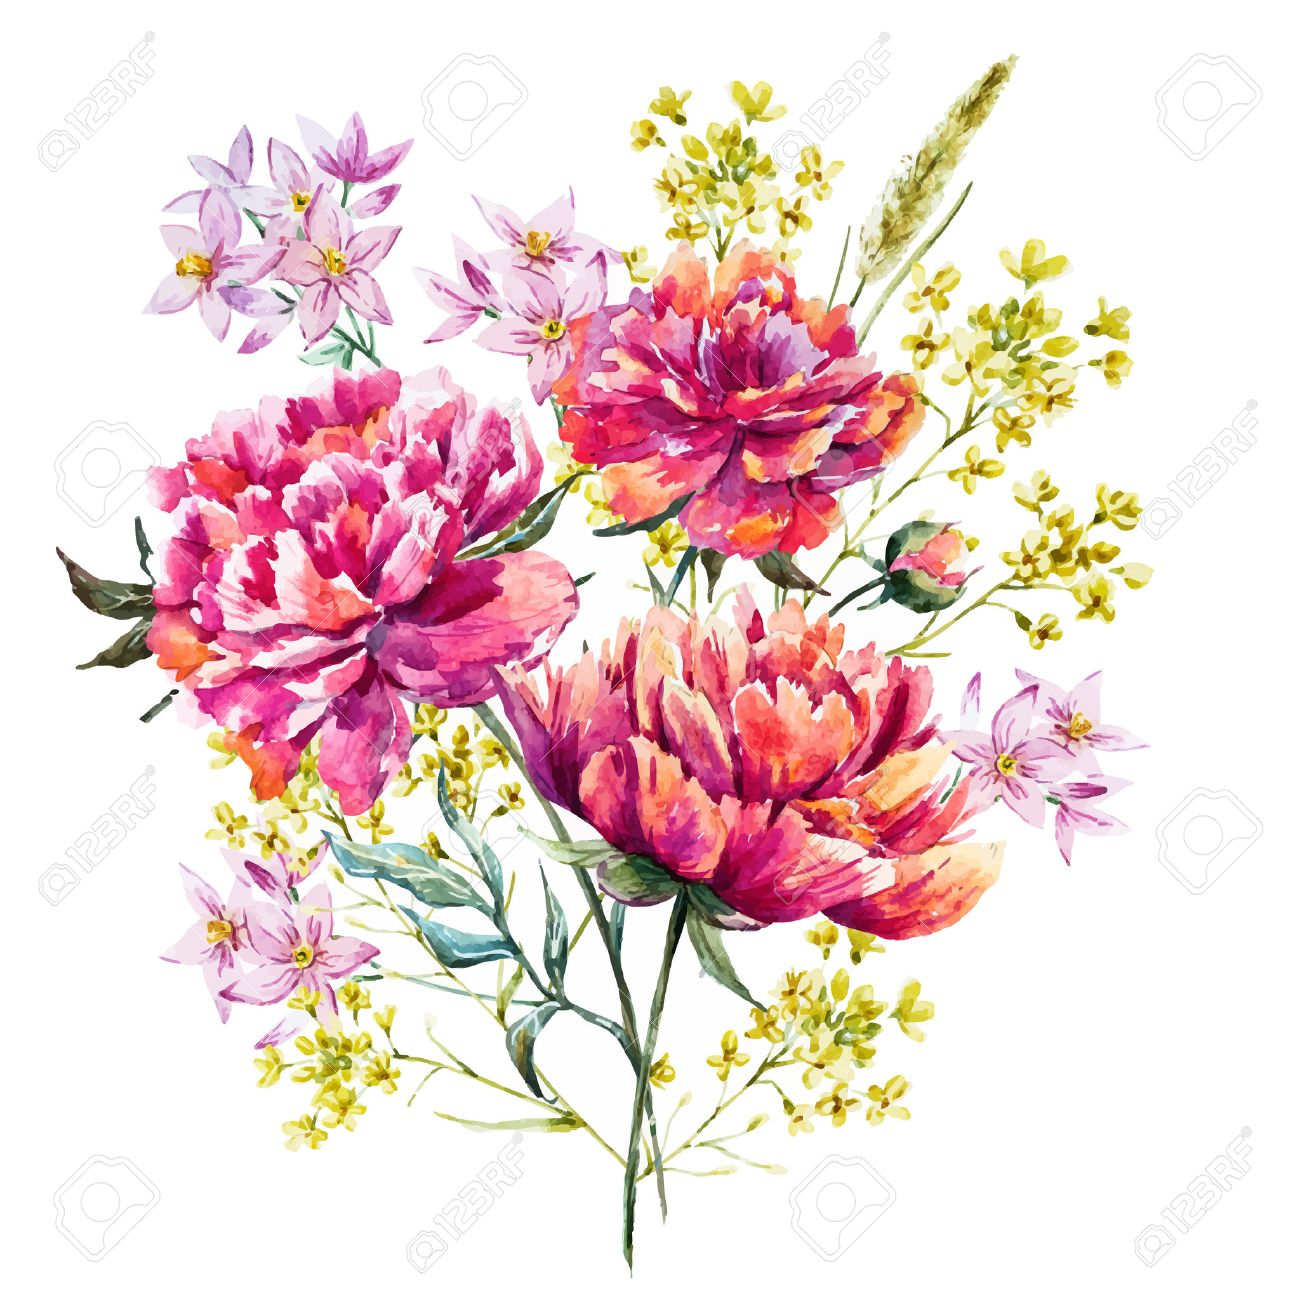 watercolor peony flowers royalty free cliparts vectors and stock rh 123rf com peony vector free peony vector free